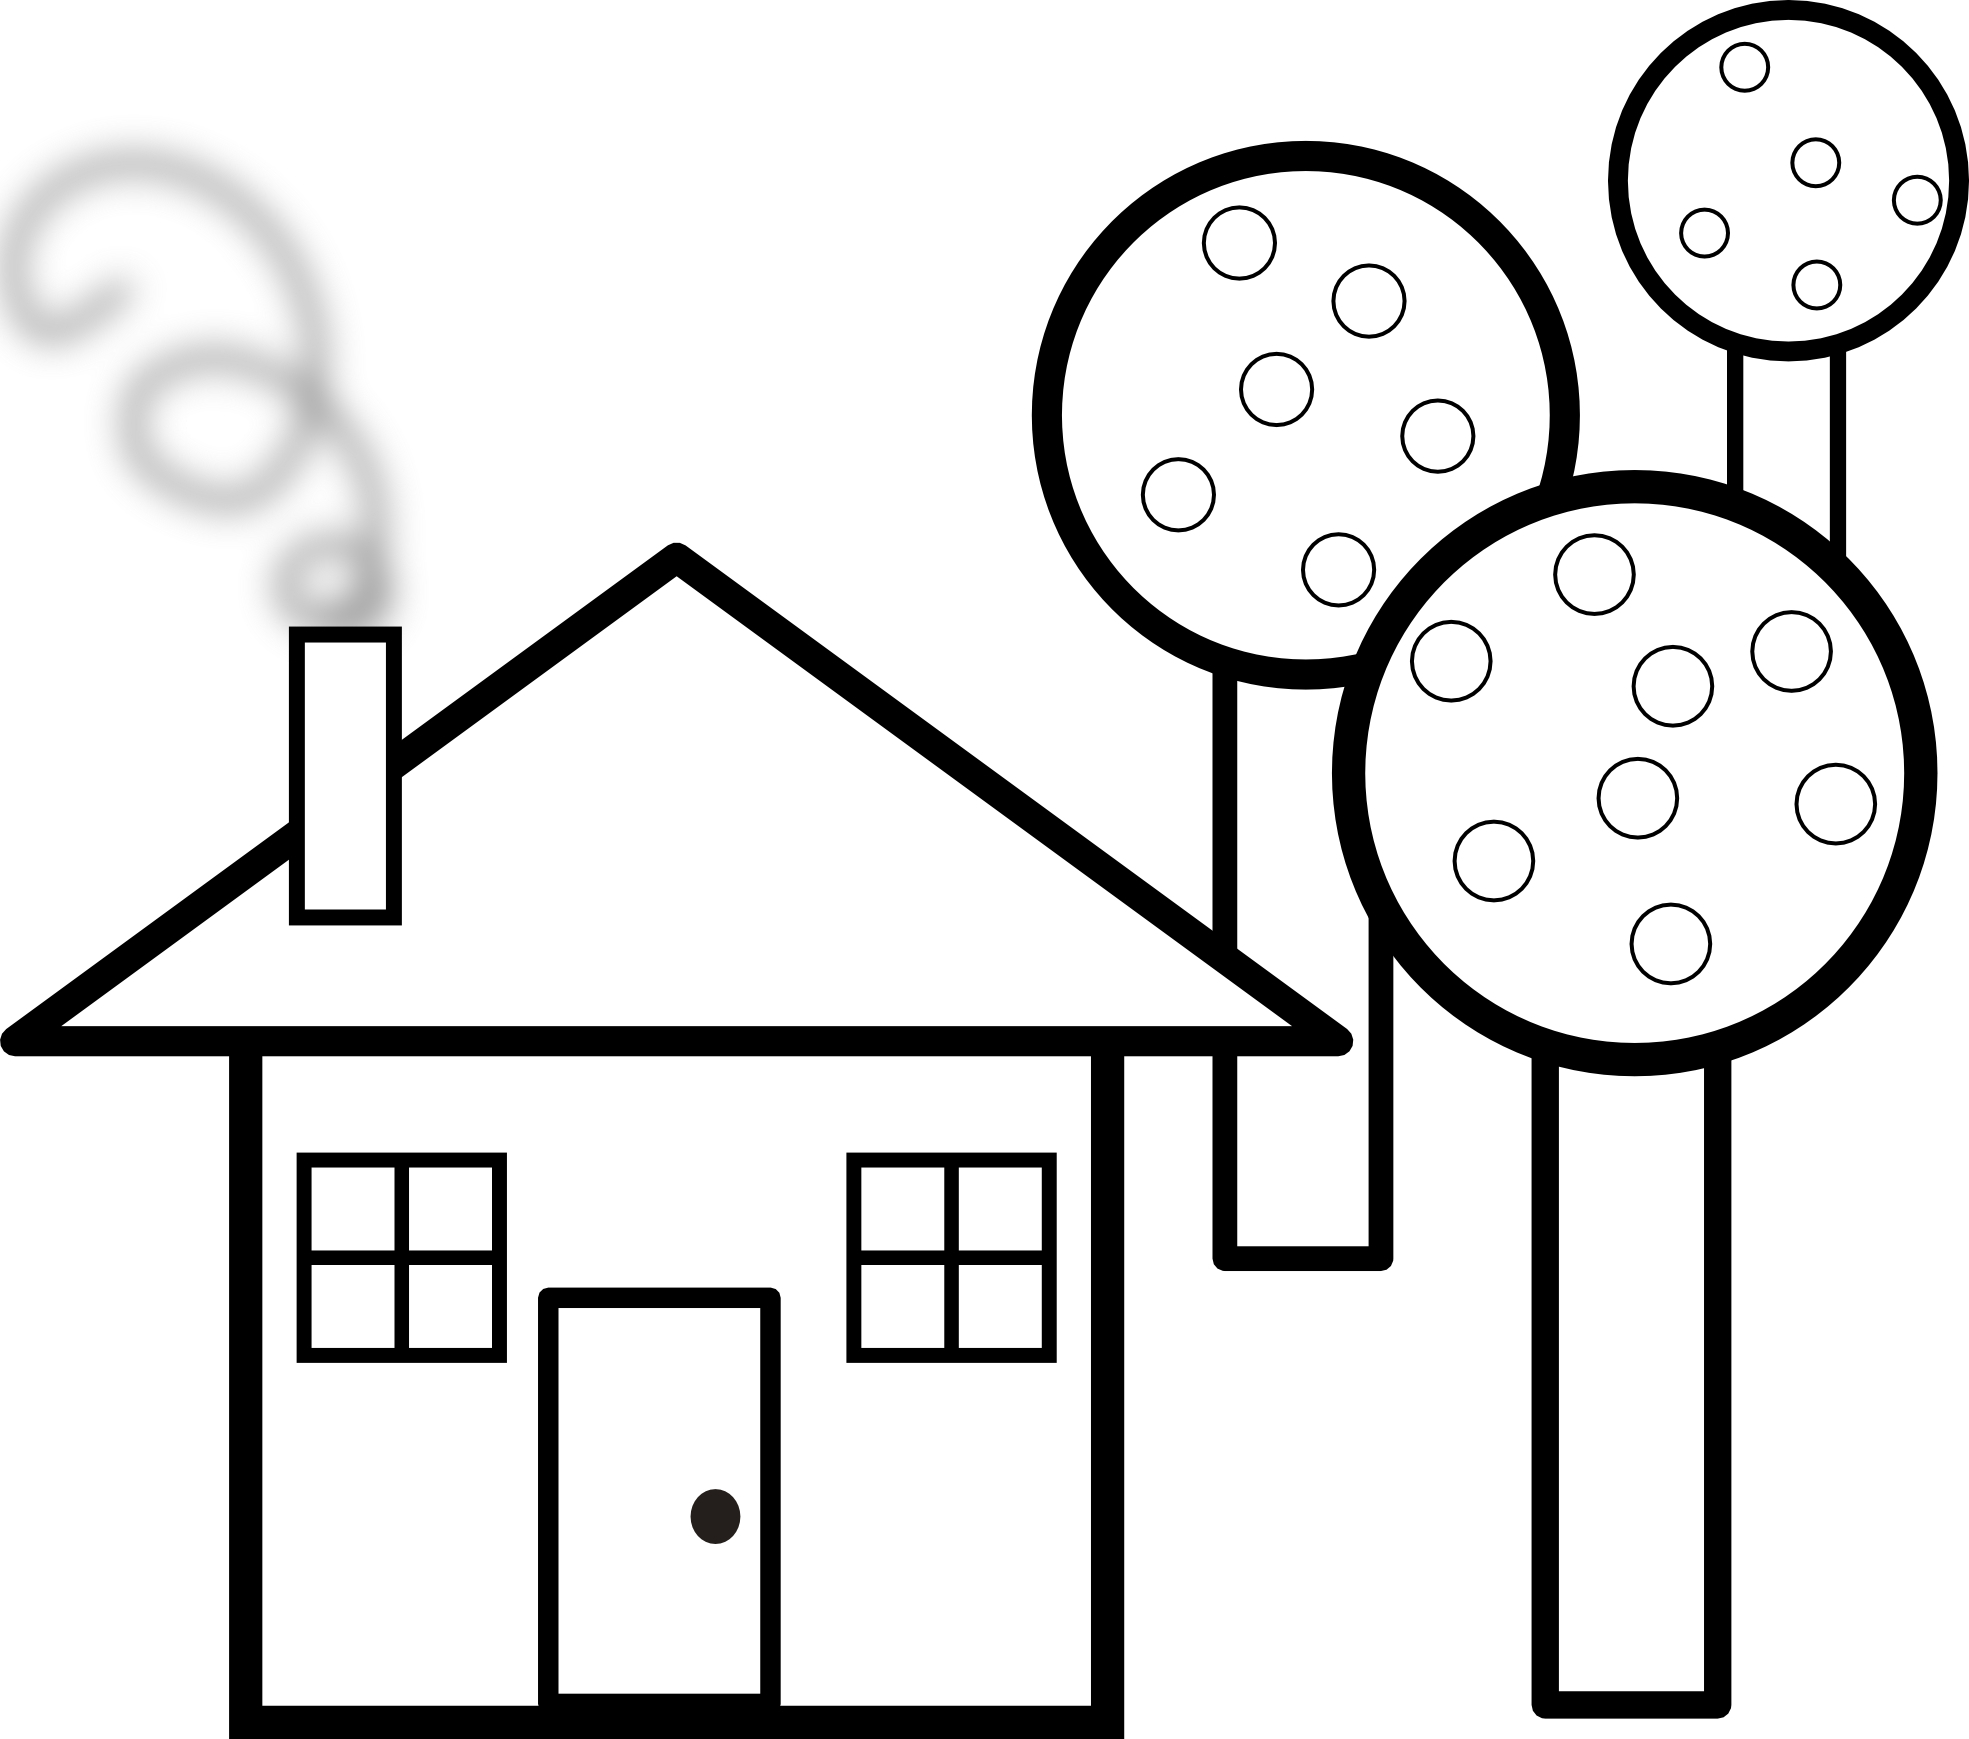 house drawing black and white at getdrawings com free for personal rh getdrawings com black and white haunted house clipart black and white school house clipart